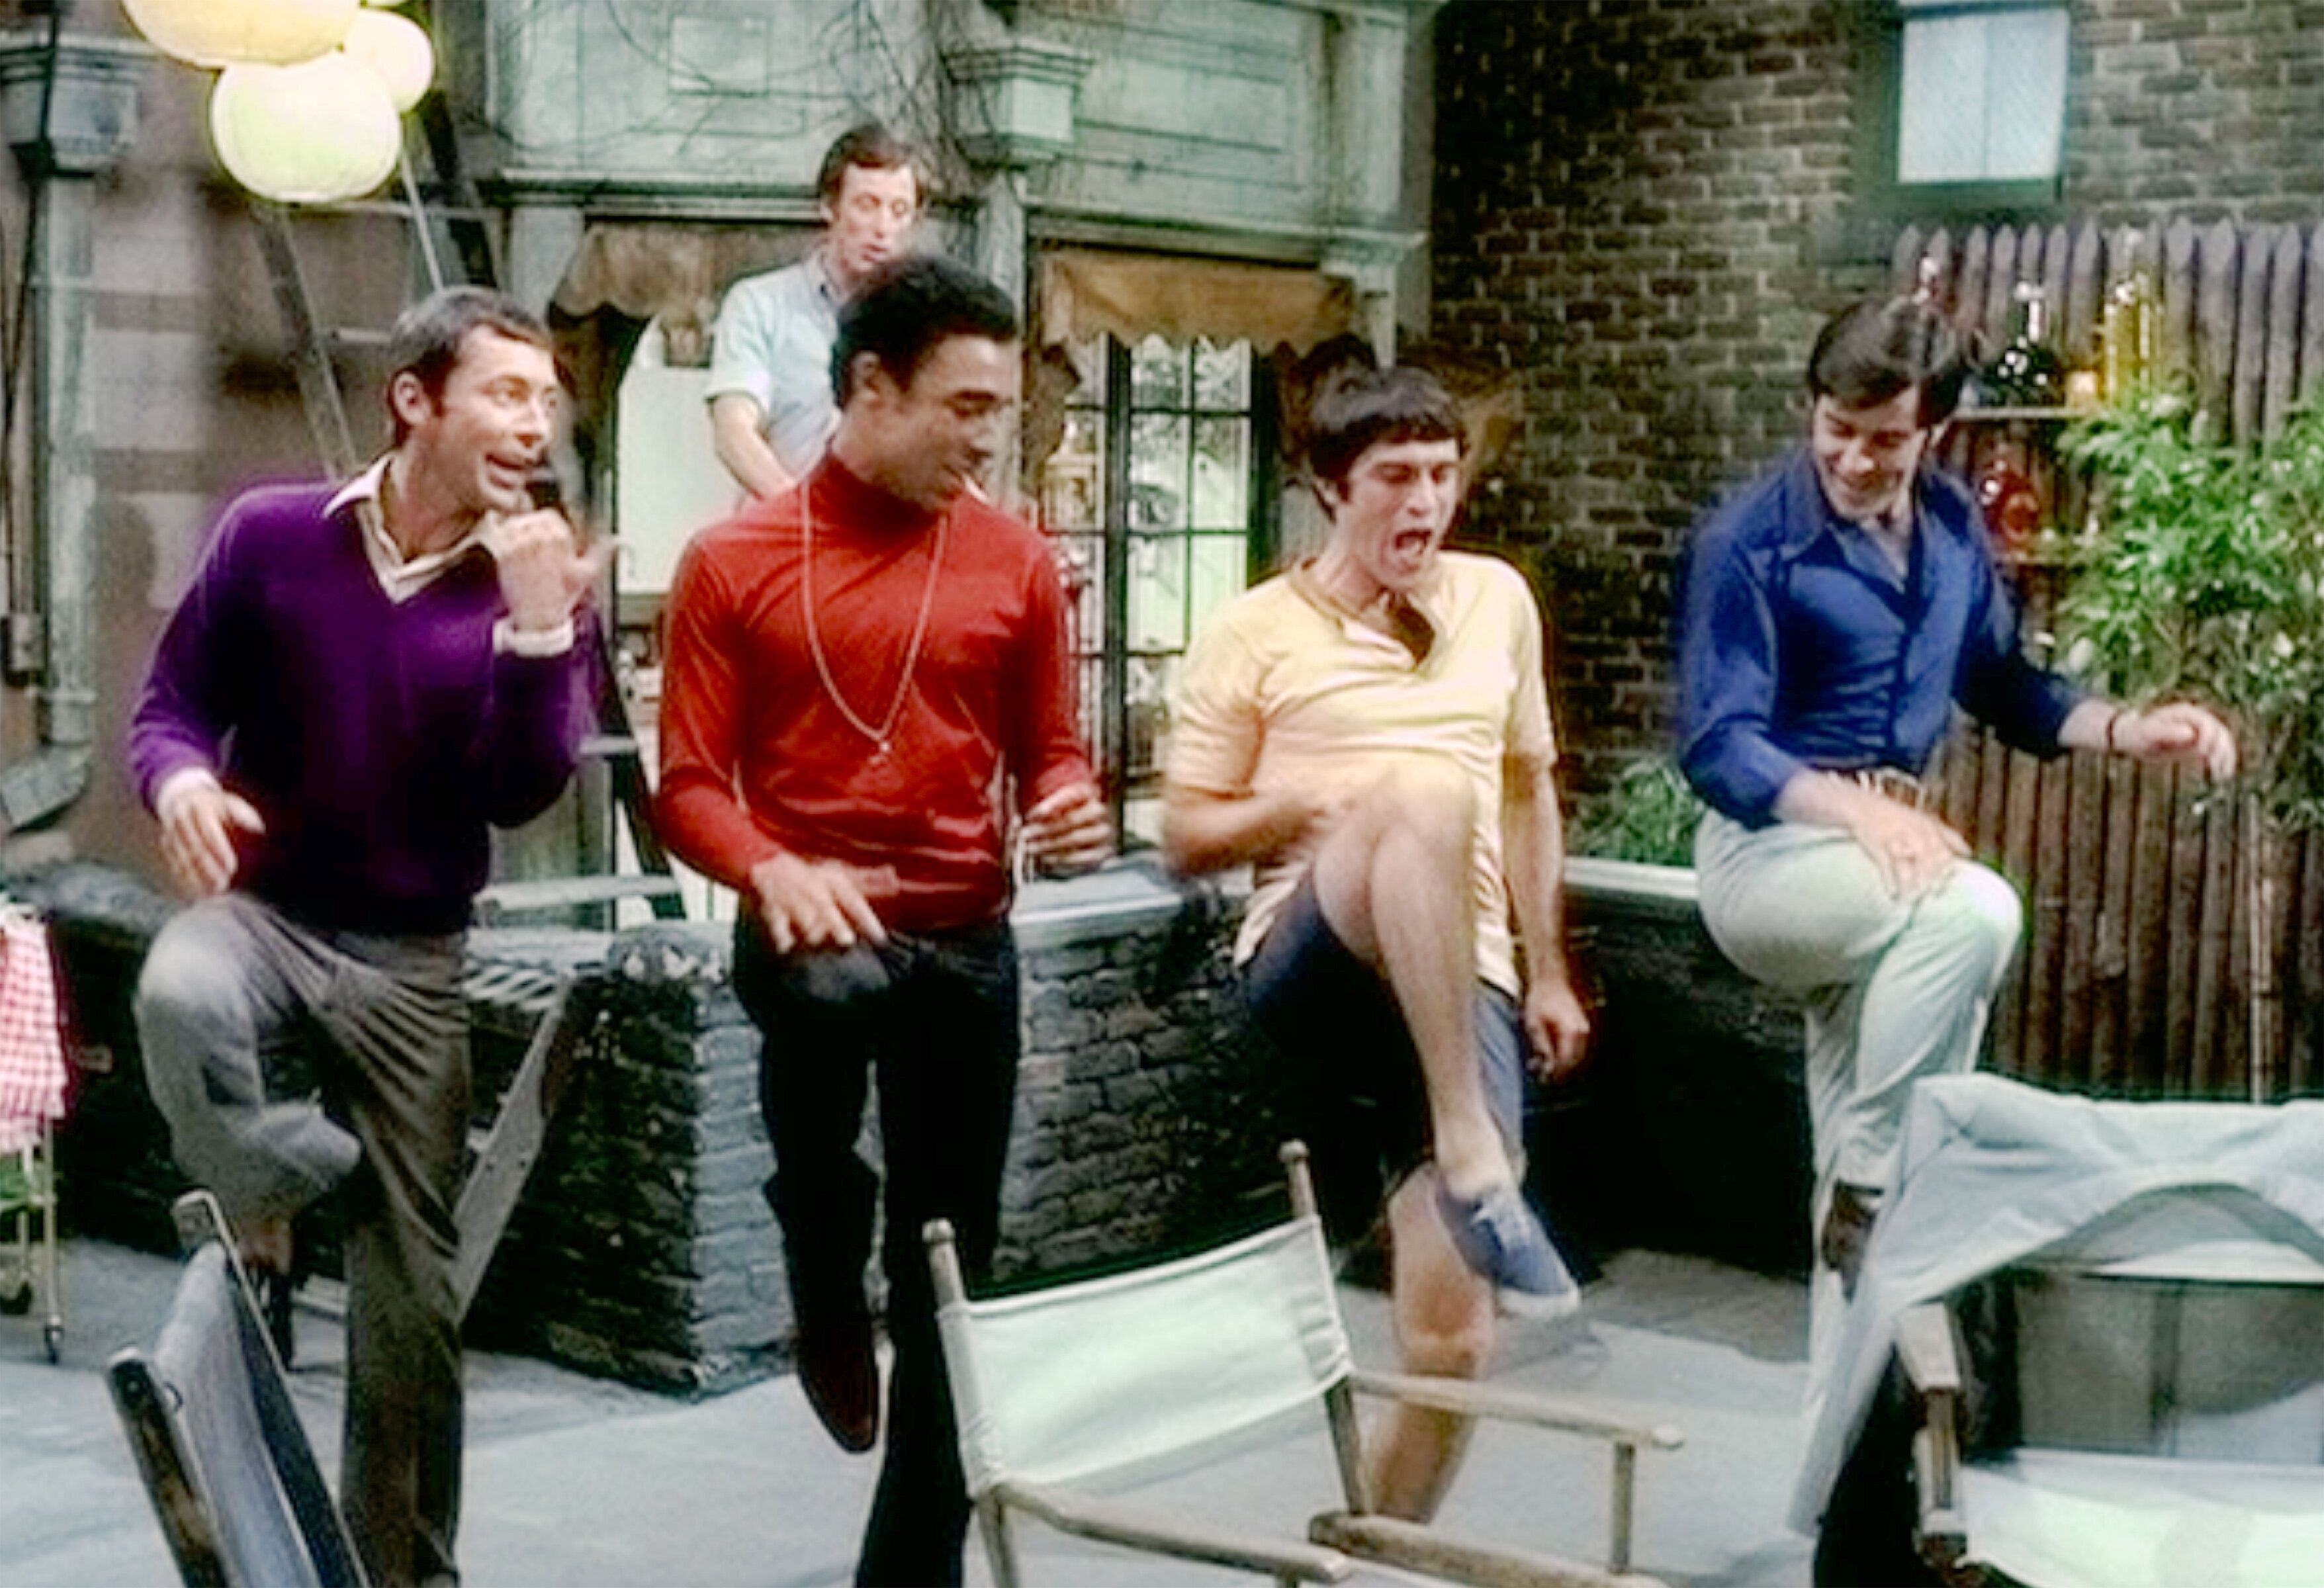 """From left: Kenneth Nelson, Reuben Greene, Cliff Gorman, Keith Prentice and Frederick Combs in """"The Boys in the Band."""""""